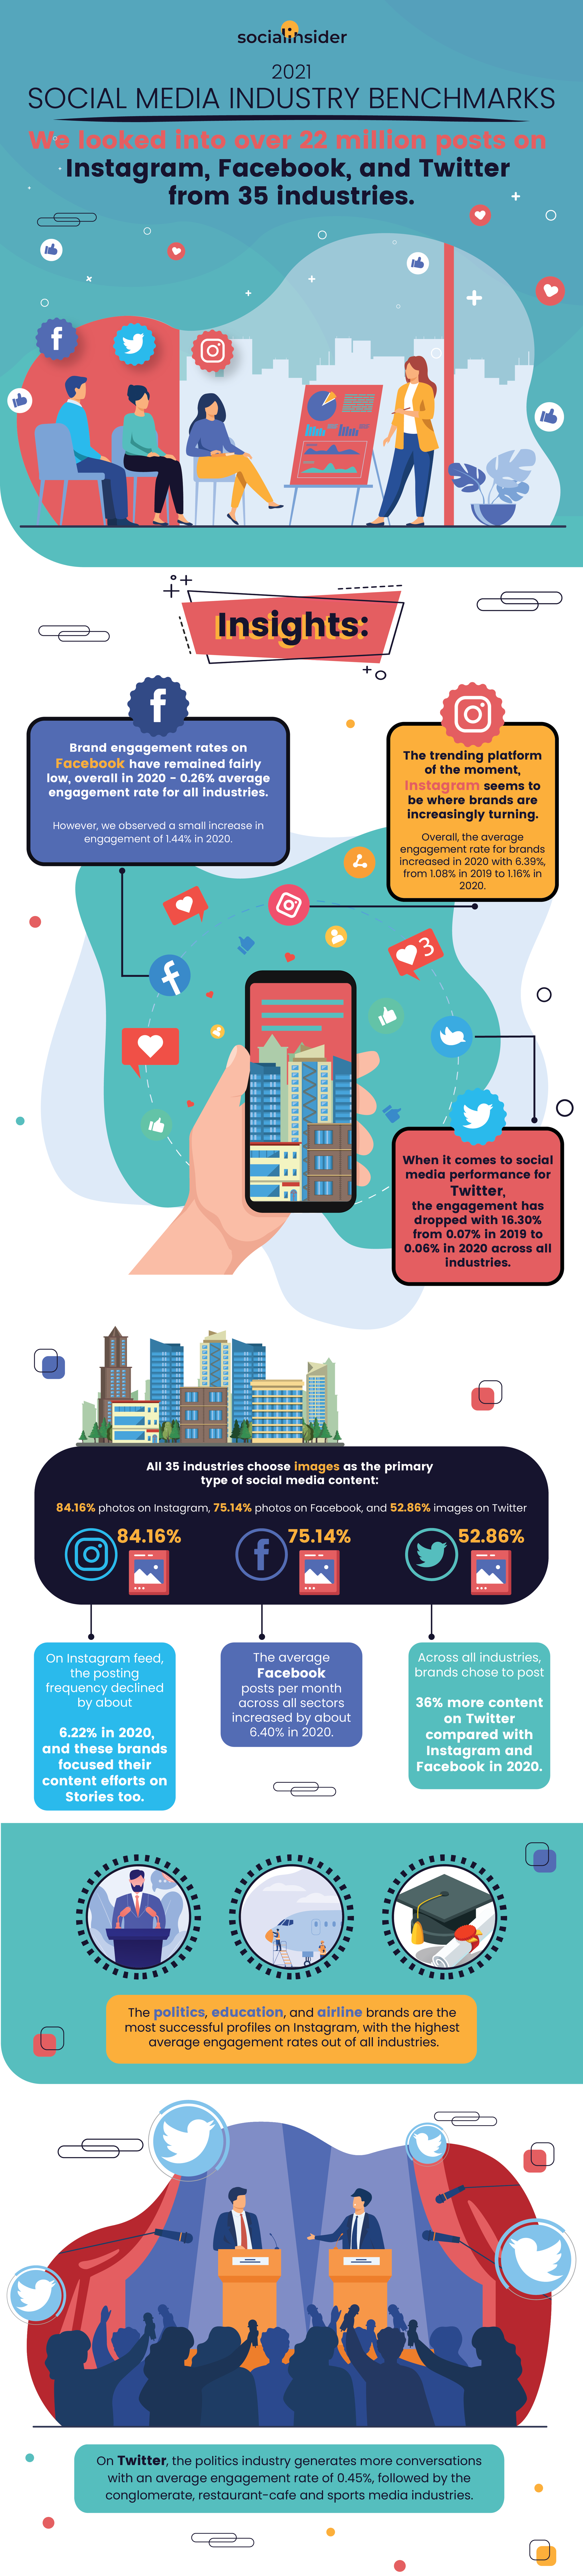 2021 Social Media Industry Benchmarks [Infographic]